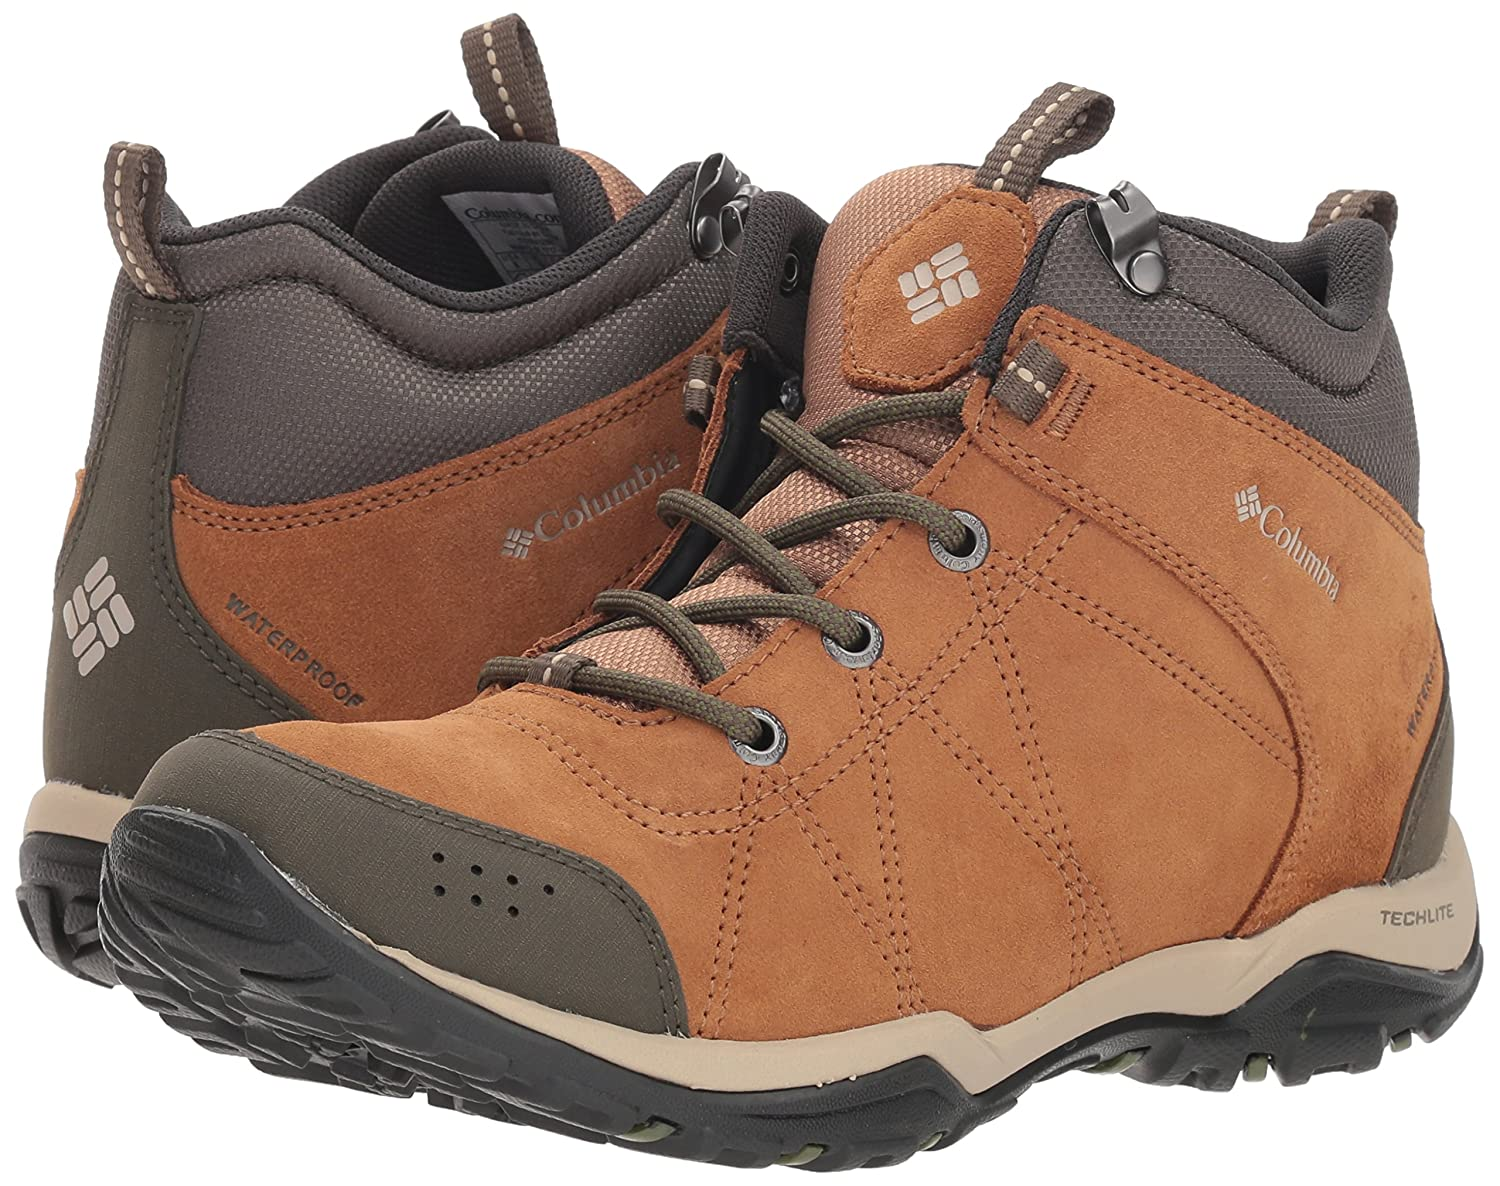 Columbia Women's Fire Venture Mid Suede Waterproof Hiking Boot B078F5NXHW 7.5 M US|Elk, Ancient Fossil